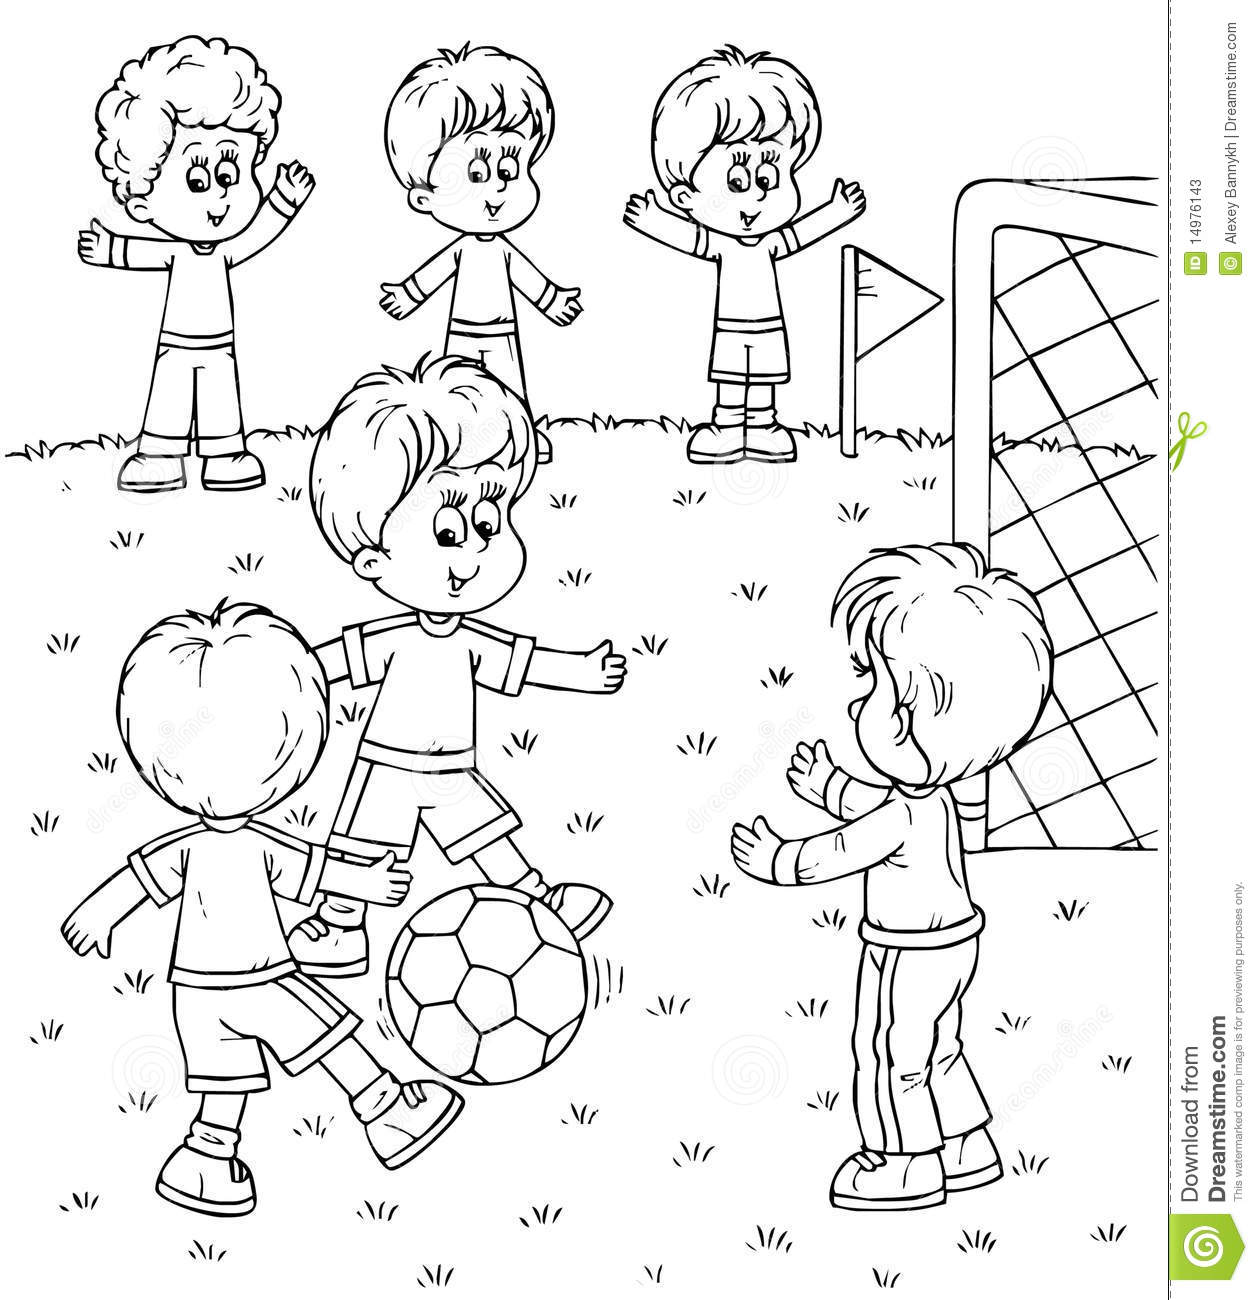 Children playing clipart black and white 3 » Clipart Station.